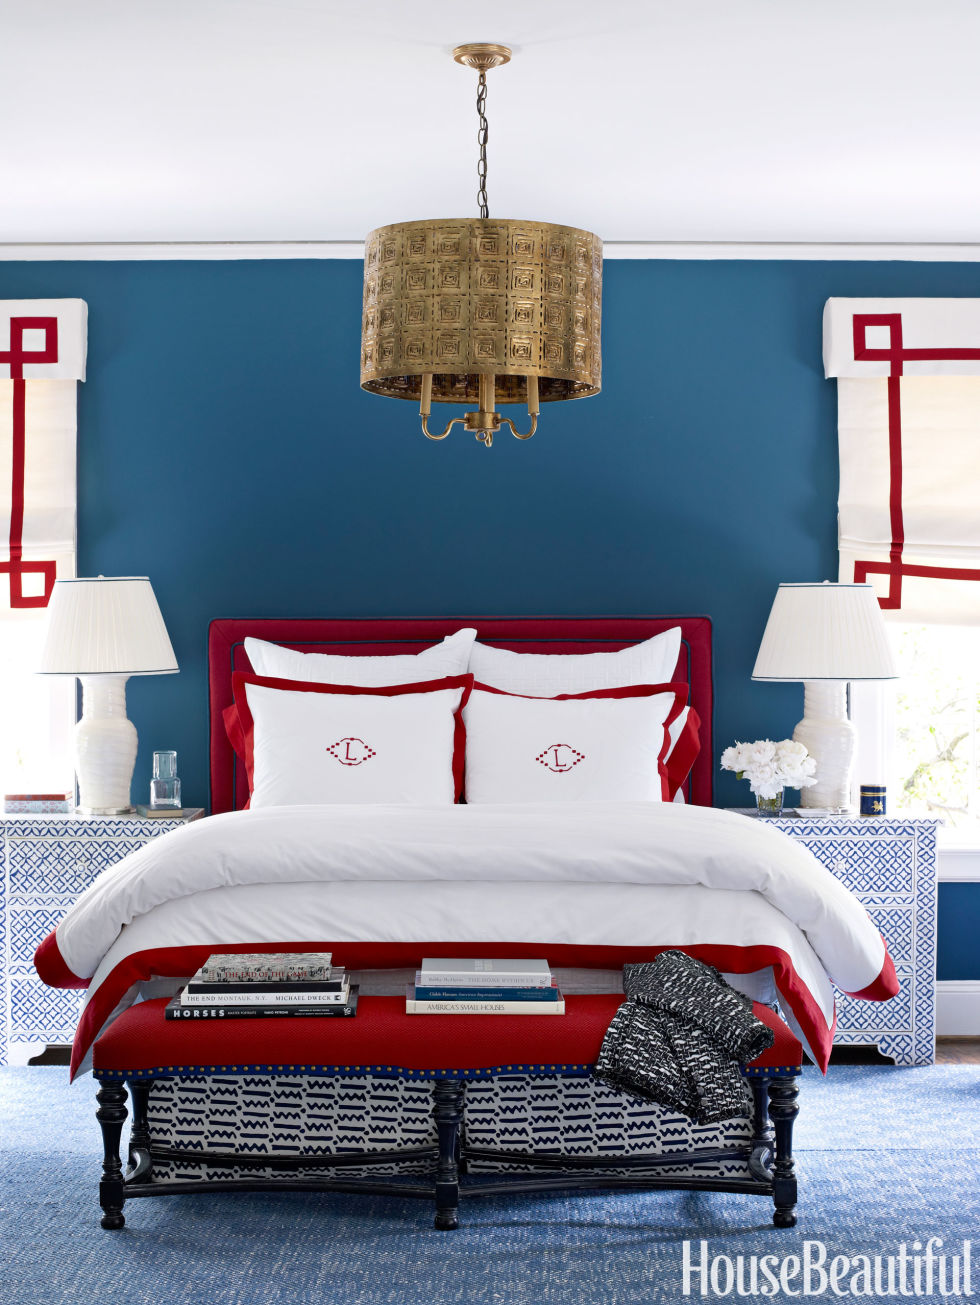 Bedroom Decor Red And White stunning 50+ red white and blue bedroom accessories design ideas